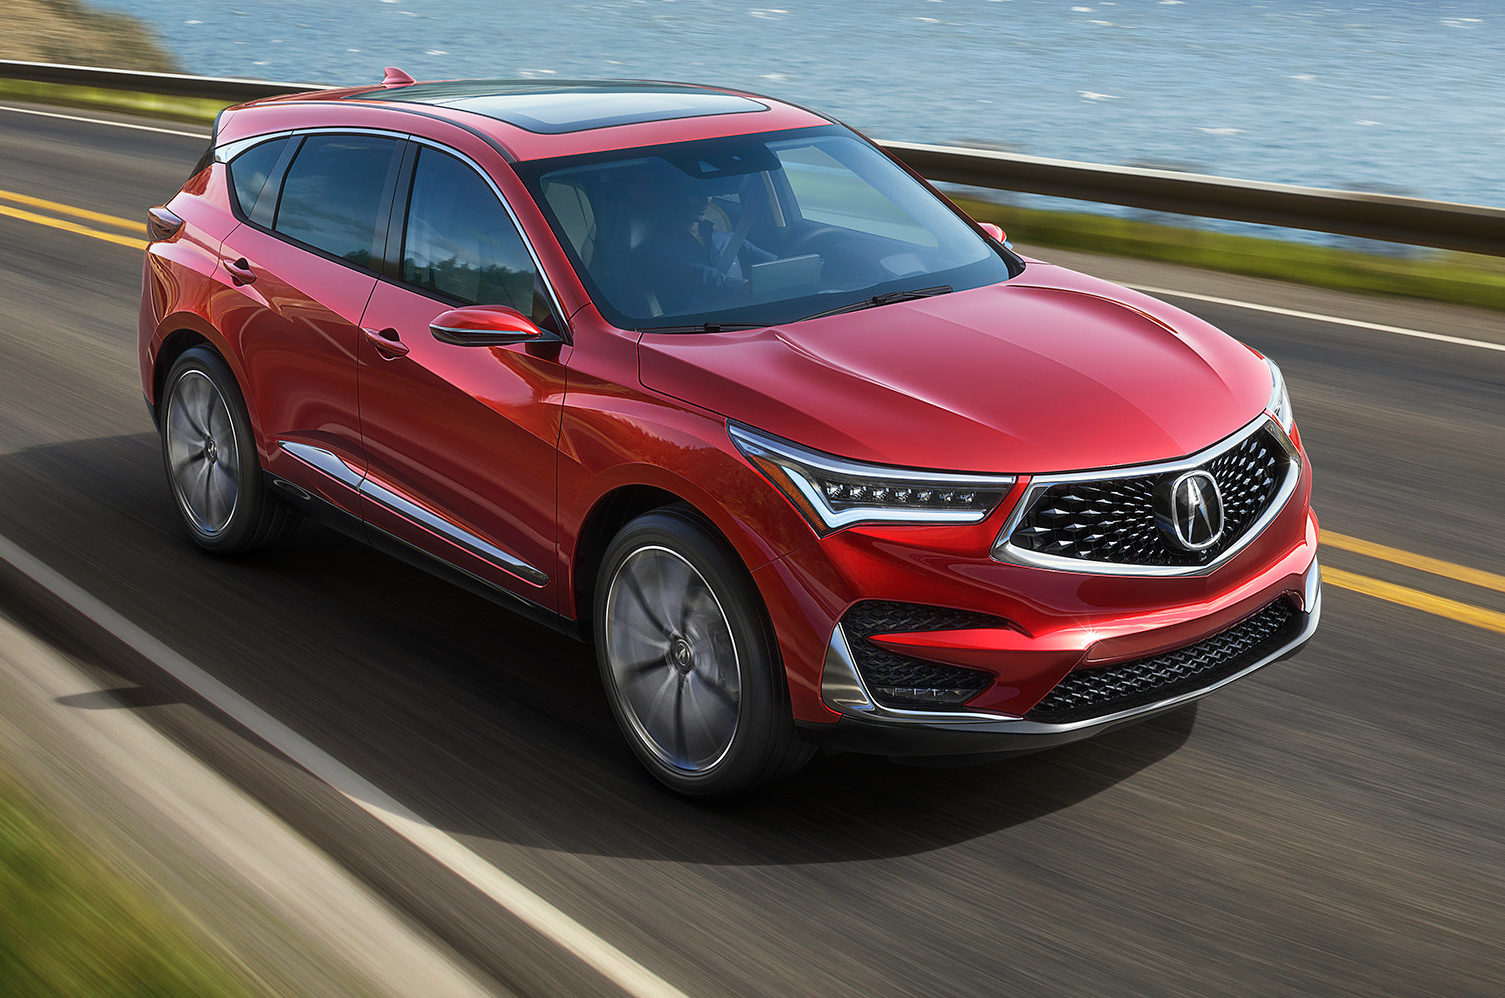 2019 Acura RDX Prototype Front Three Quarter In Motion E1515798823726